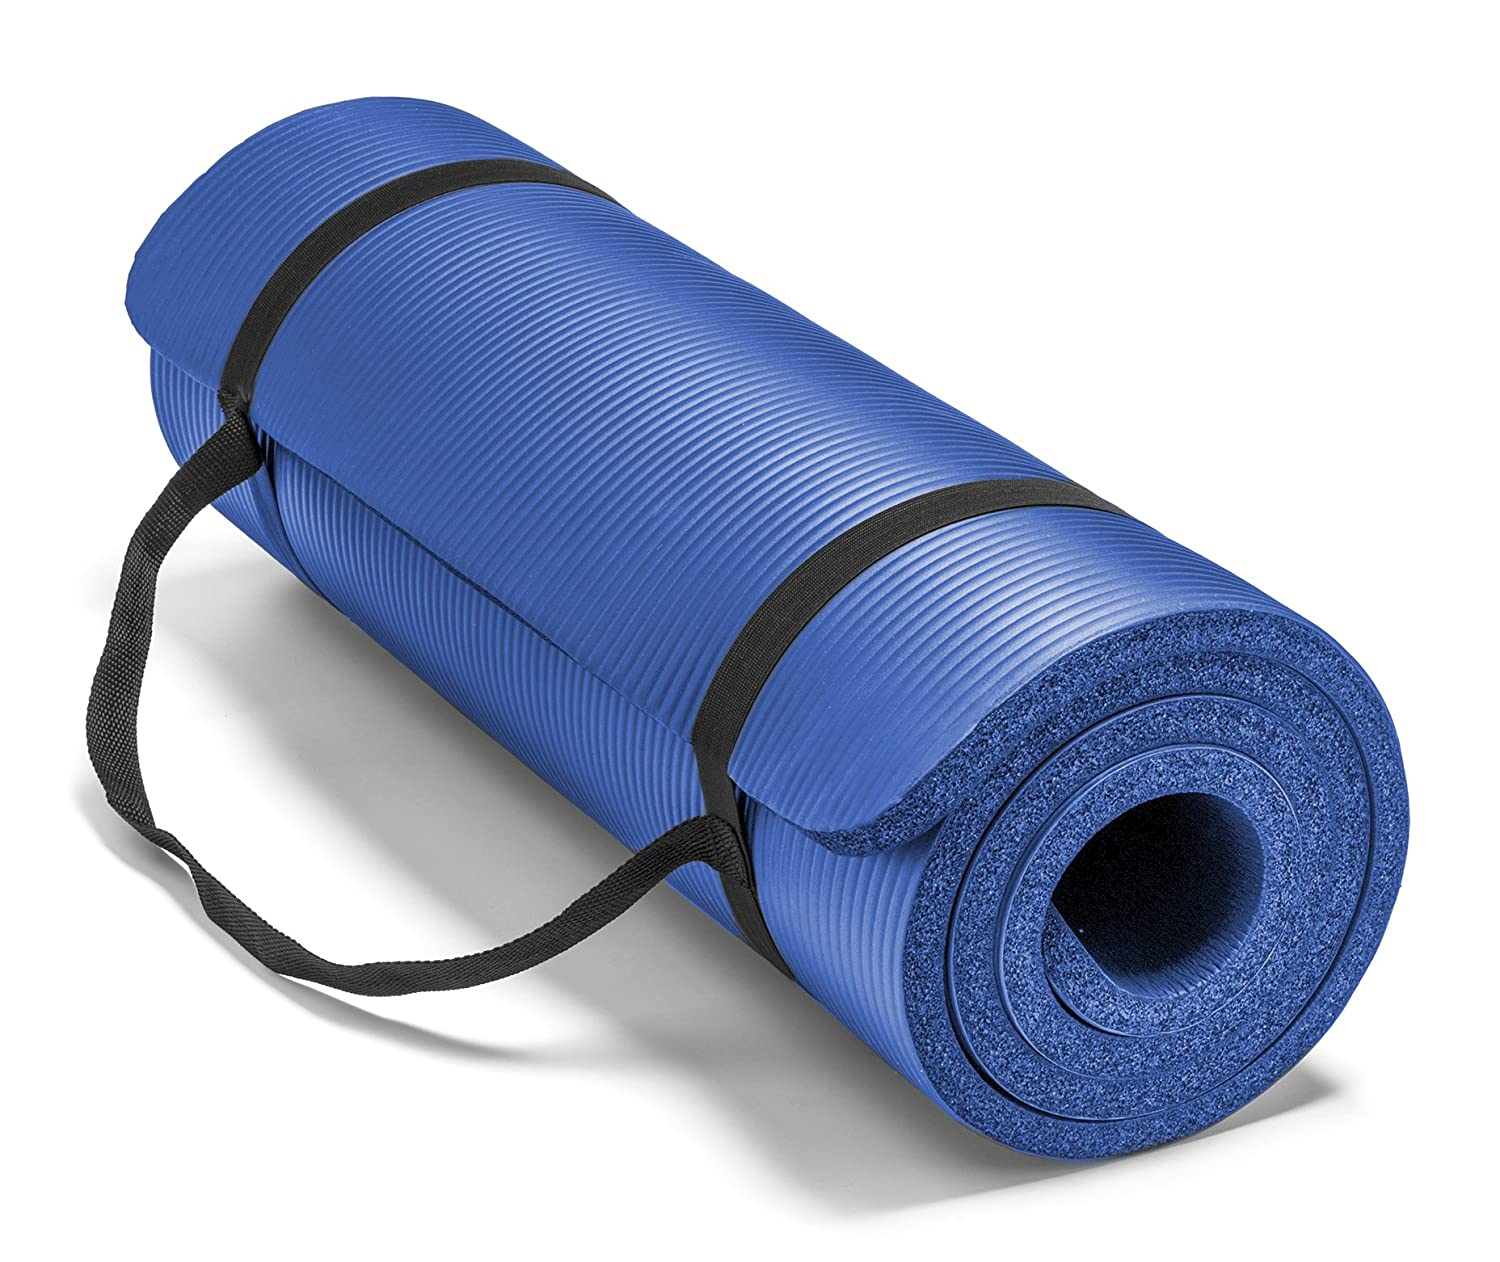 product eva uncle new mat evafm mats gym in work exercise foam